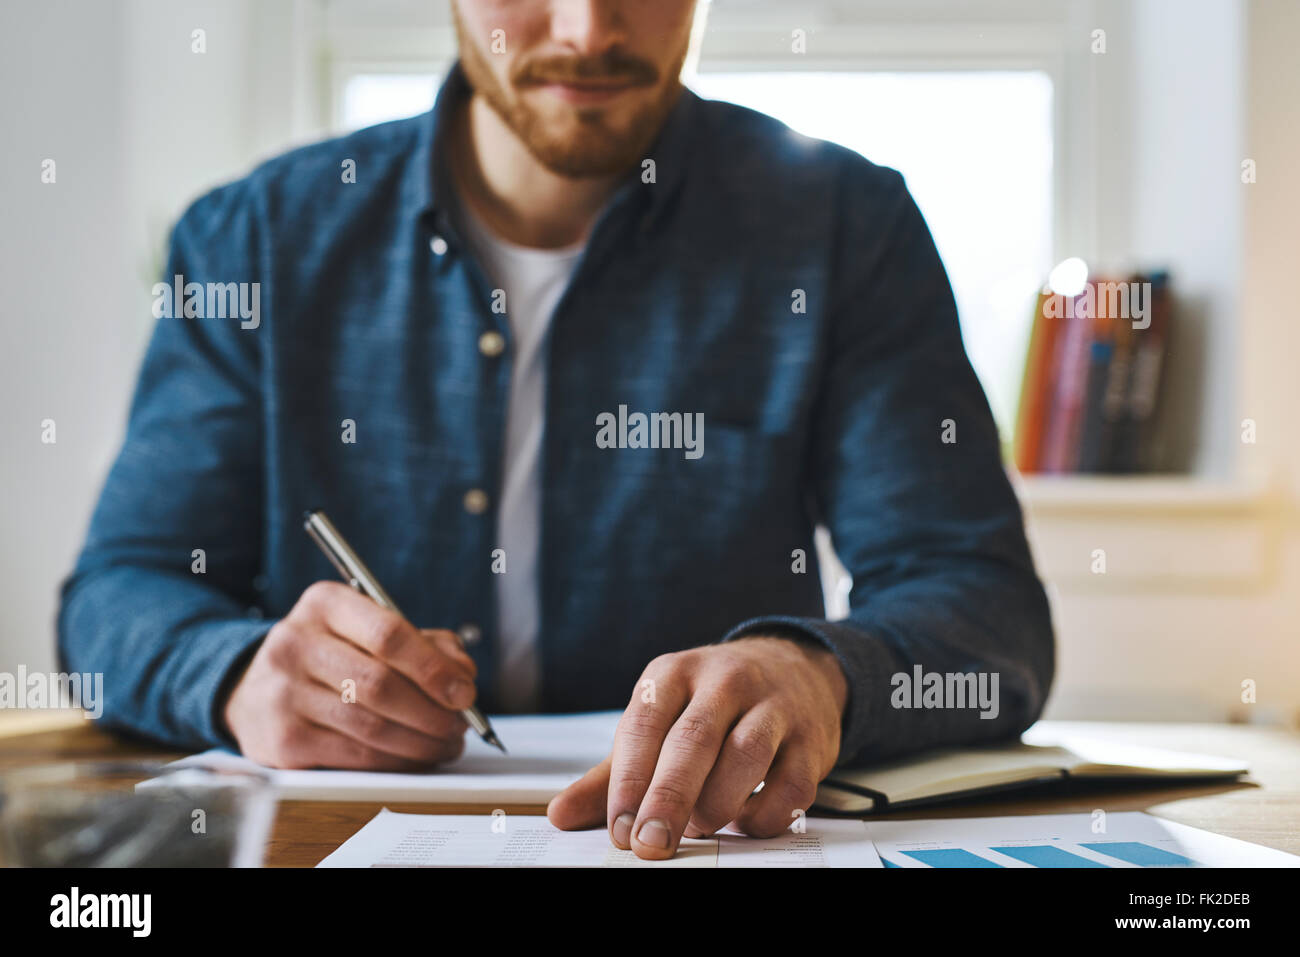 Cropped view of unidentifiable man in blue shirt with hand over paperwork as if to check statistics or plan something - Stock Image